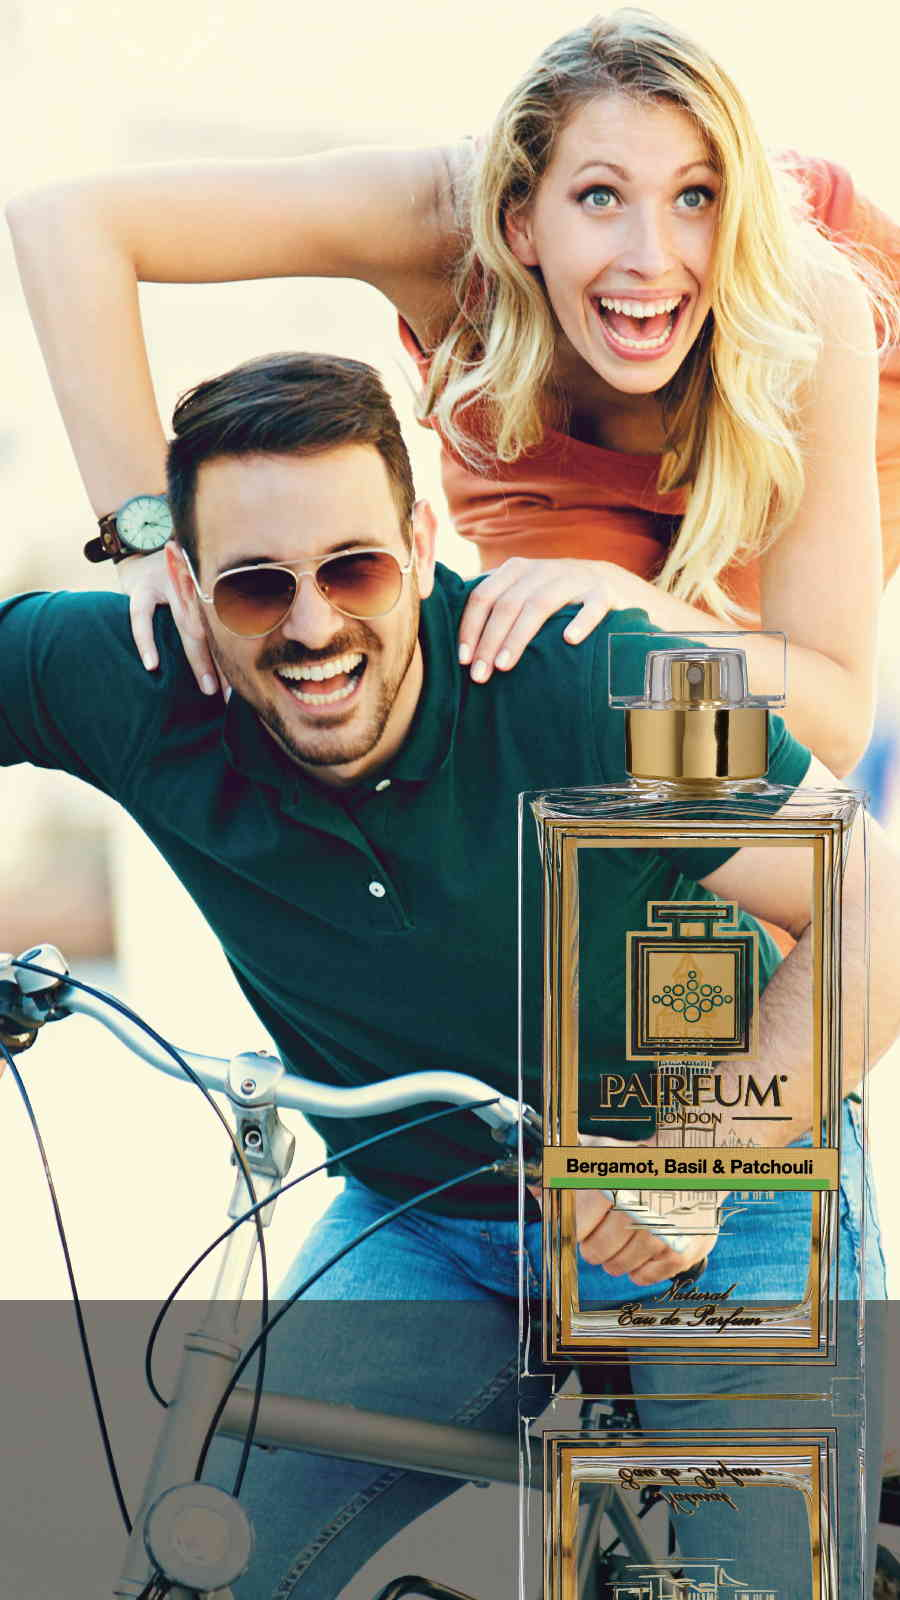 Eau De Parfum Person Reflection Bergamot Basil Patchouli Couple Bike 9 16